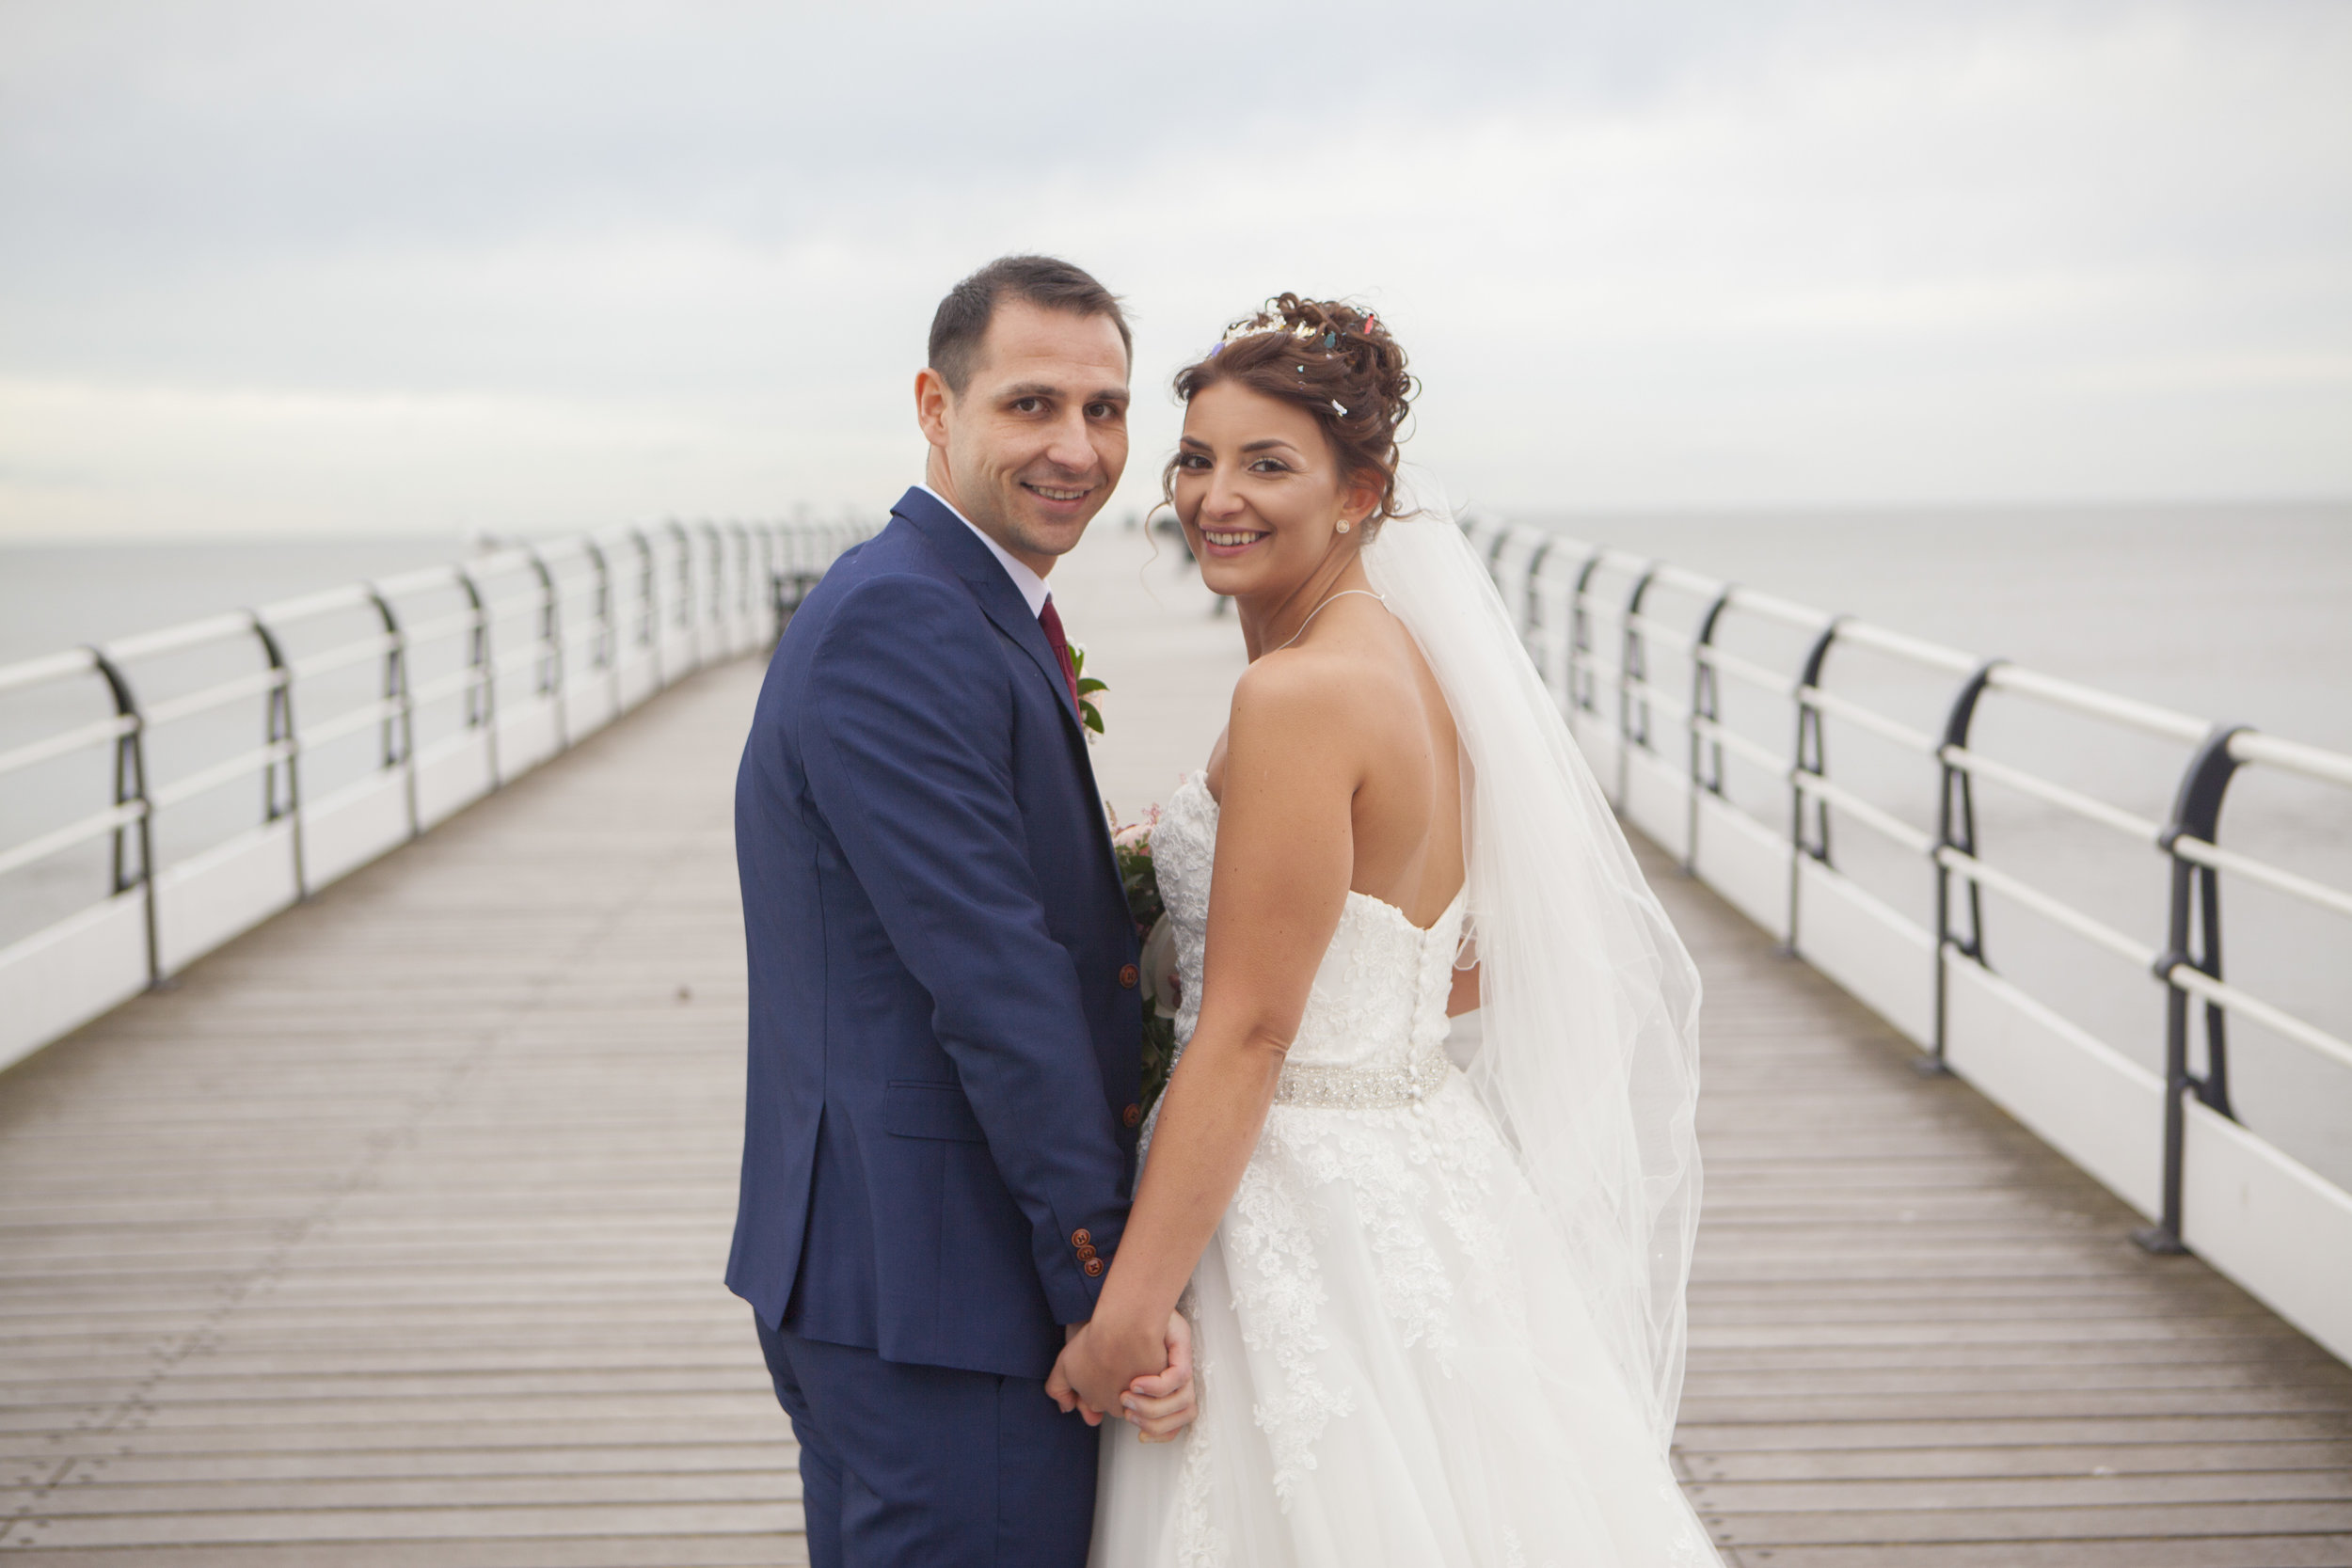 Laura & Darren, The Spa Hotel, Saltburn, 17_11_17_208.jpg